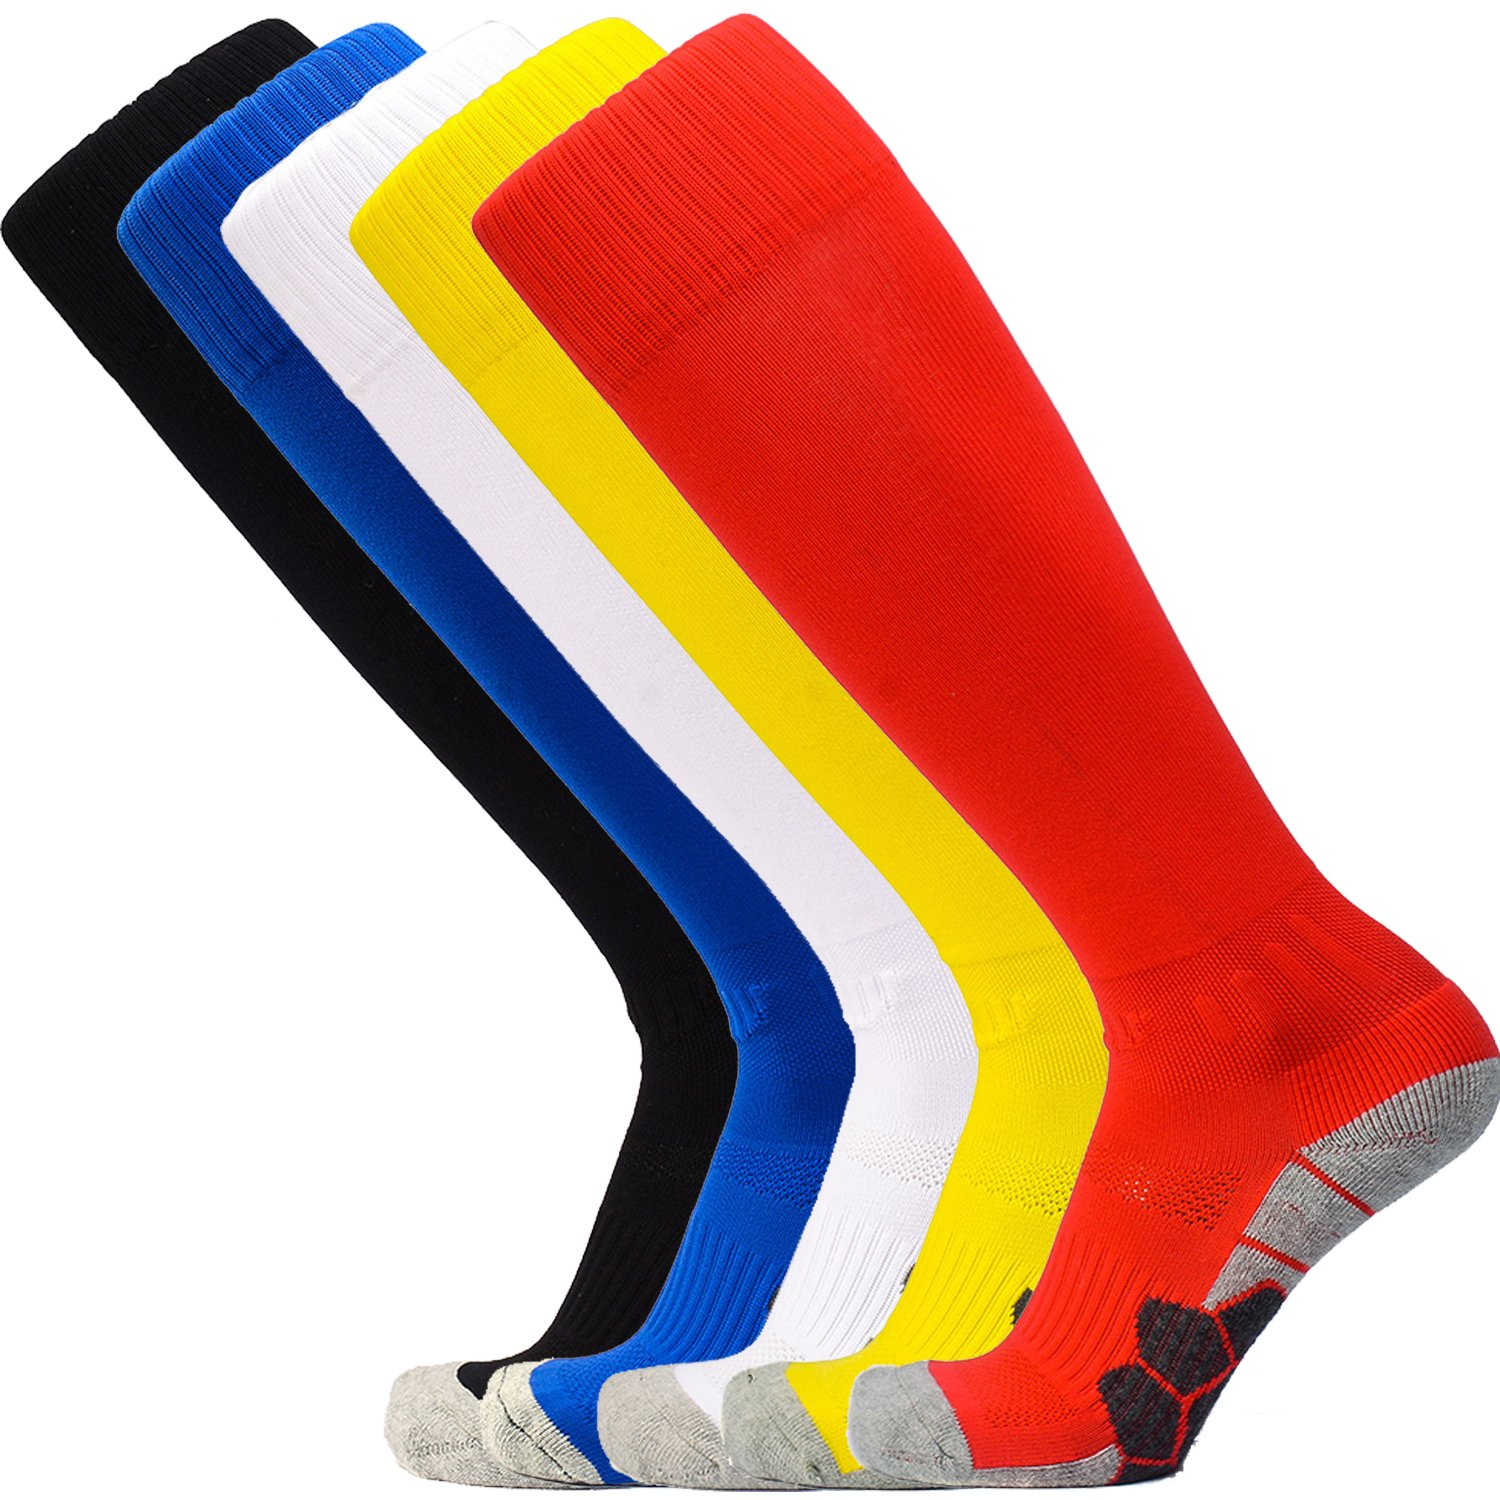 Kalakids SOCKSHOSIERY ボーイズ B07D8MKJW3New8102(red + Yellow + White + Blue + Black)